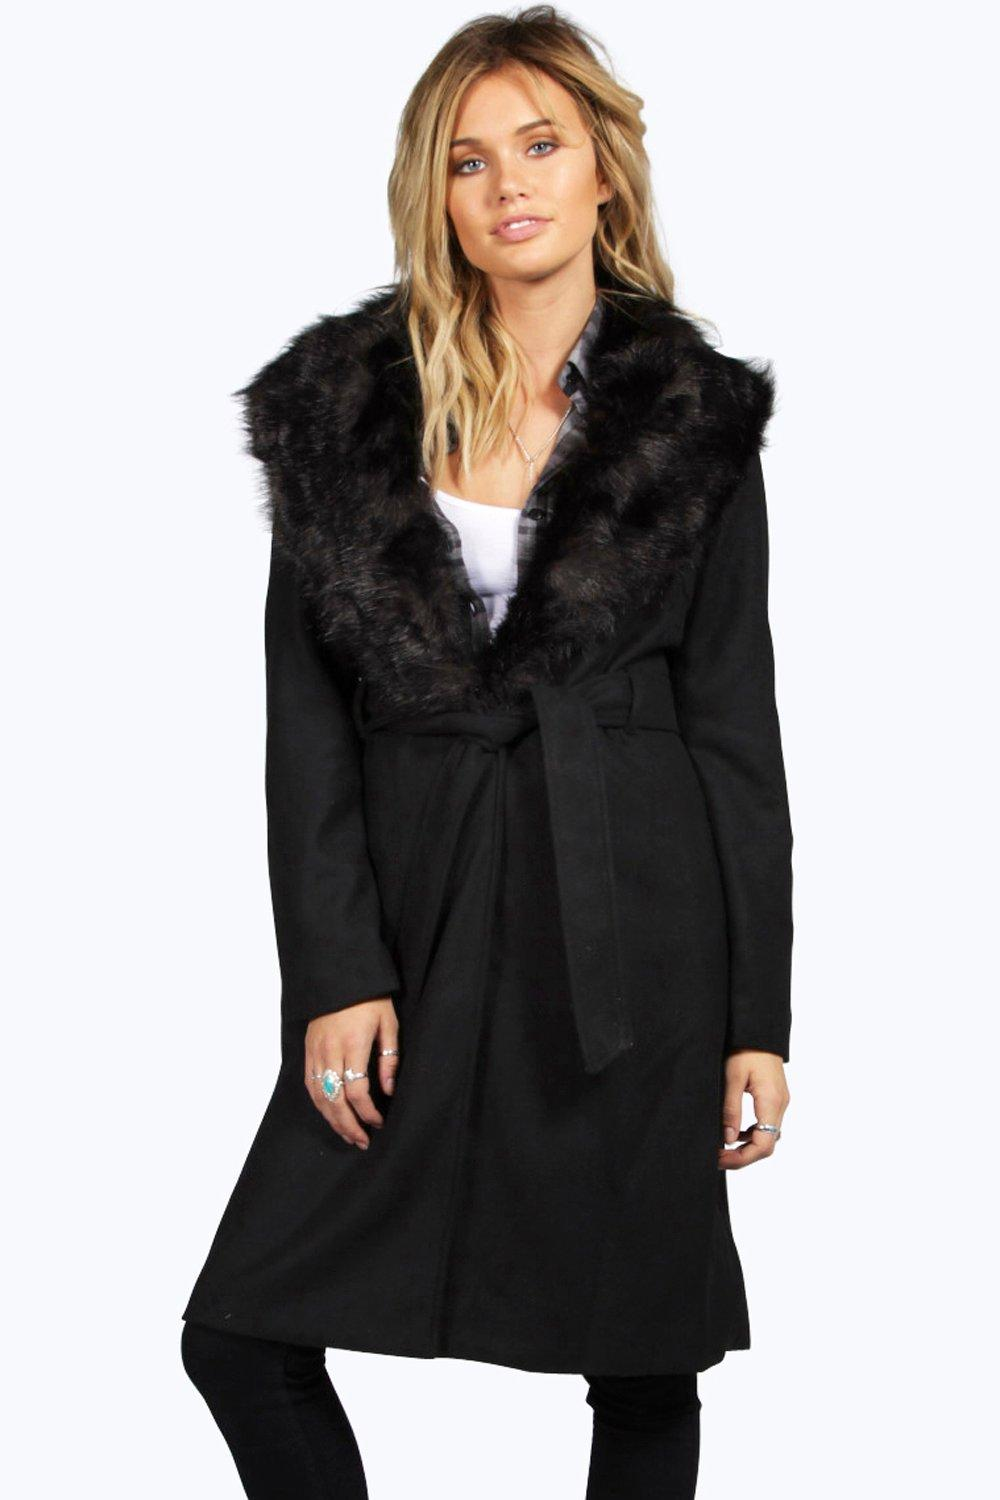 Jess Shawl Faux Fur Collar Belted Coat at boohoo.com